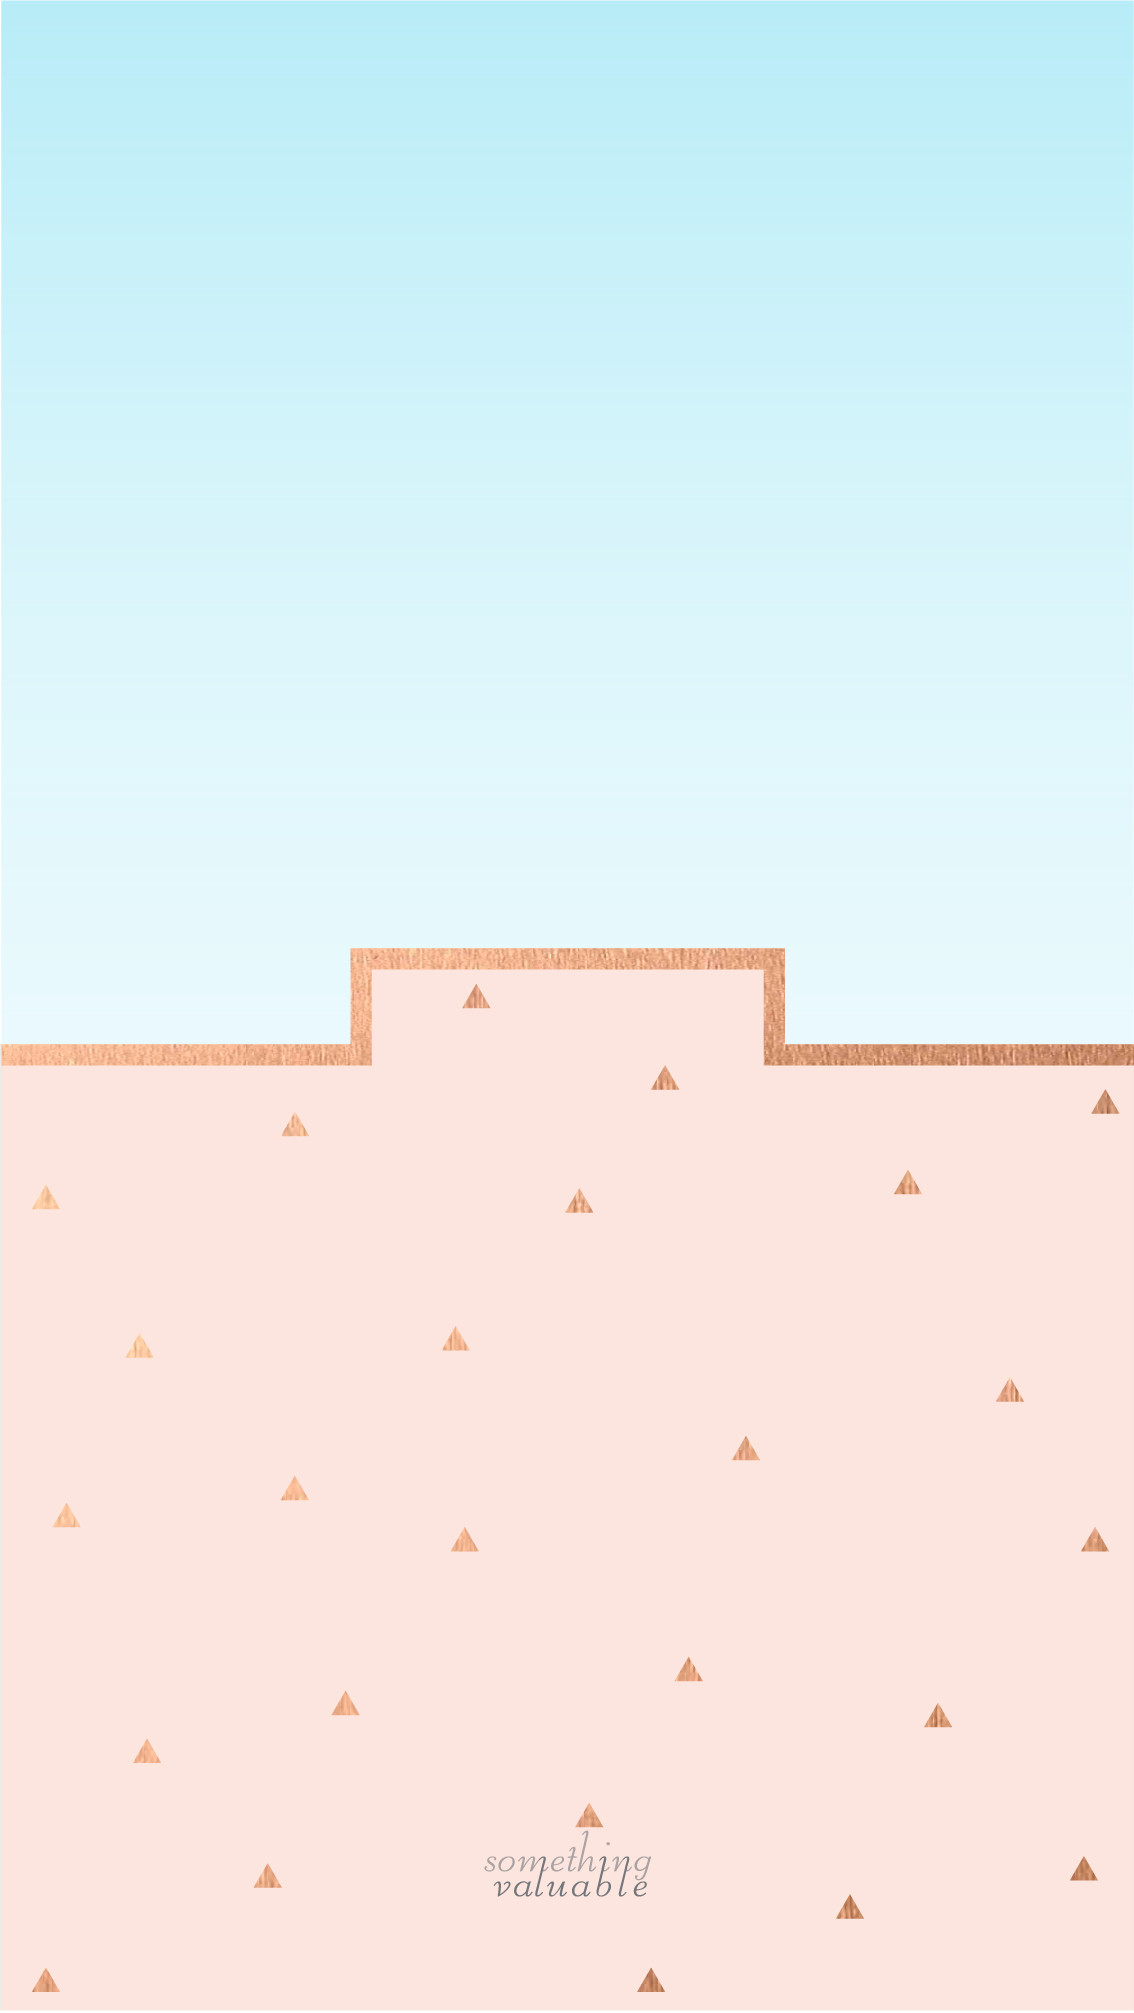 iPhone wallpaper design •ROSE GOLD WALL WITH THE BLUE SKY •